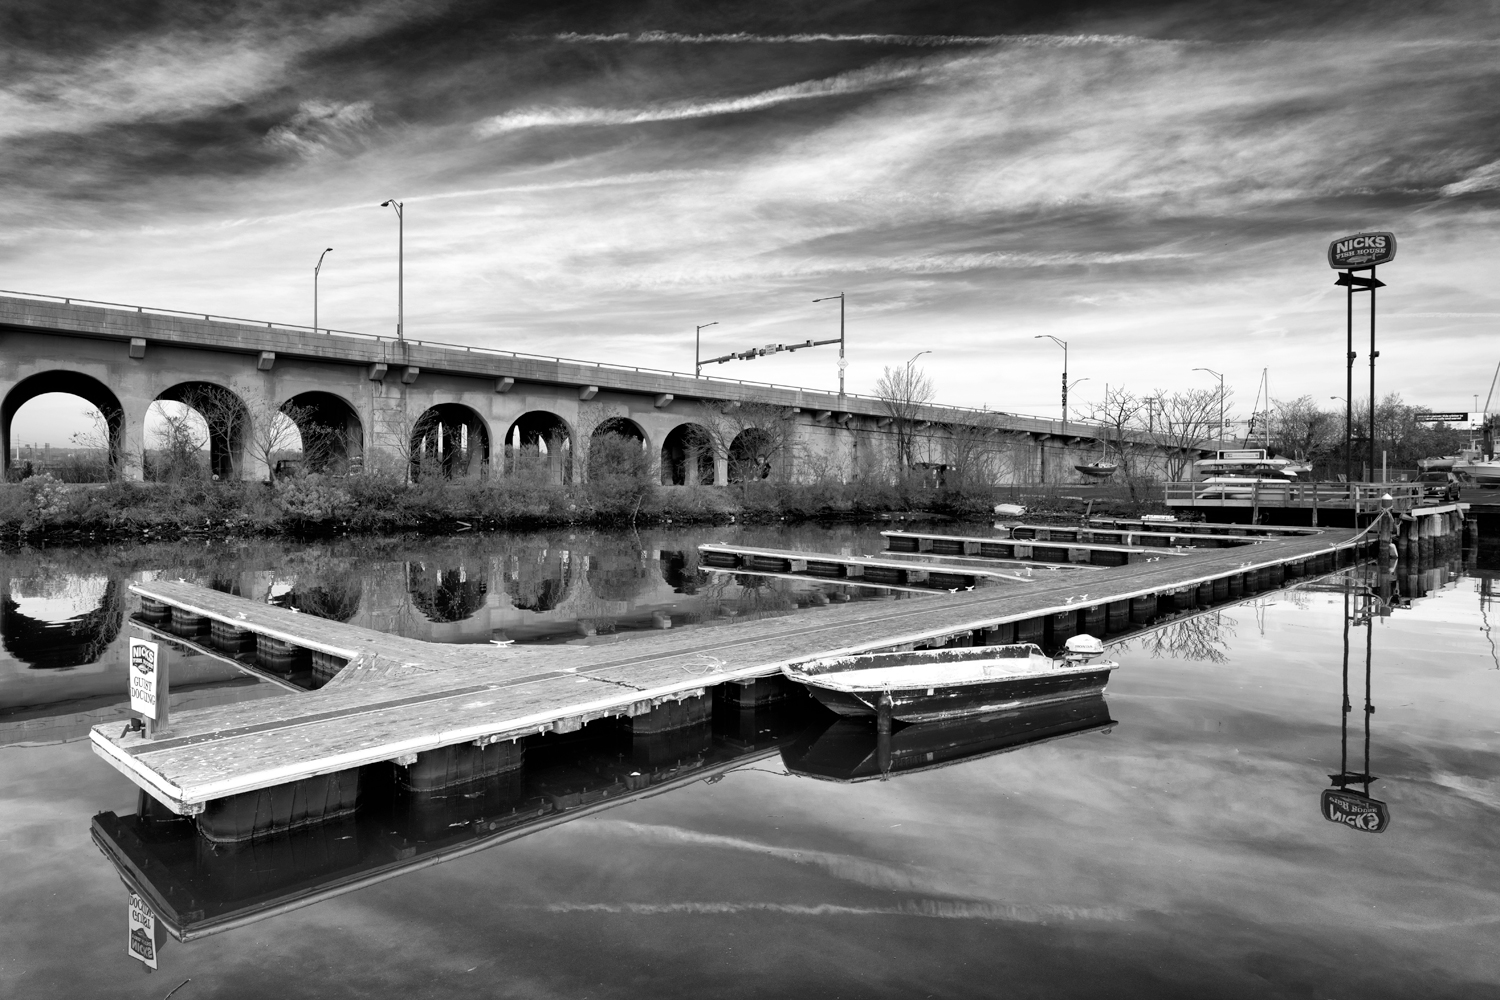 141123-Baltimore-Harbor-22-as-Smart-Object-1-bw.jpg